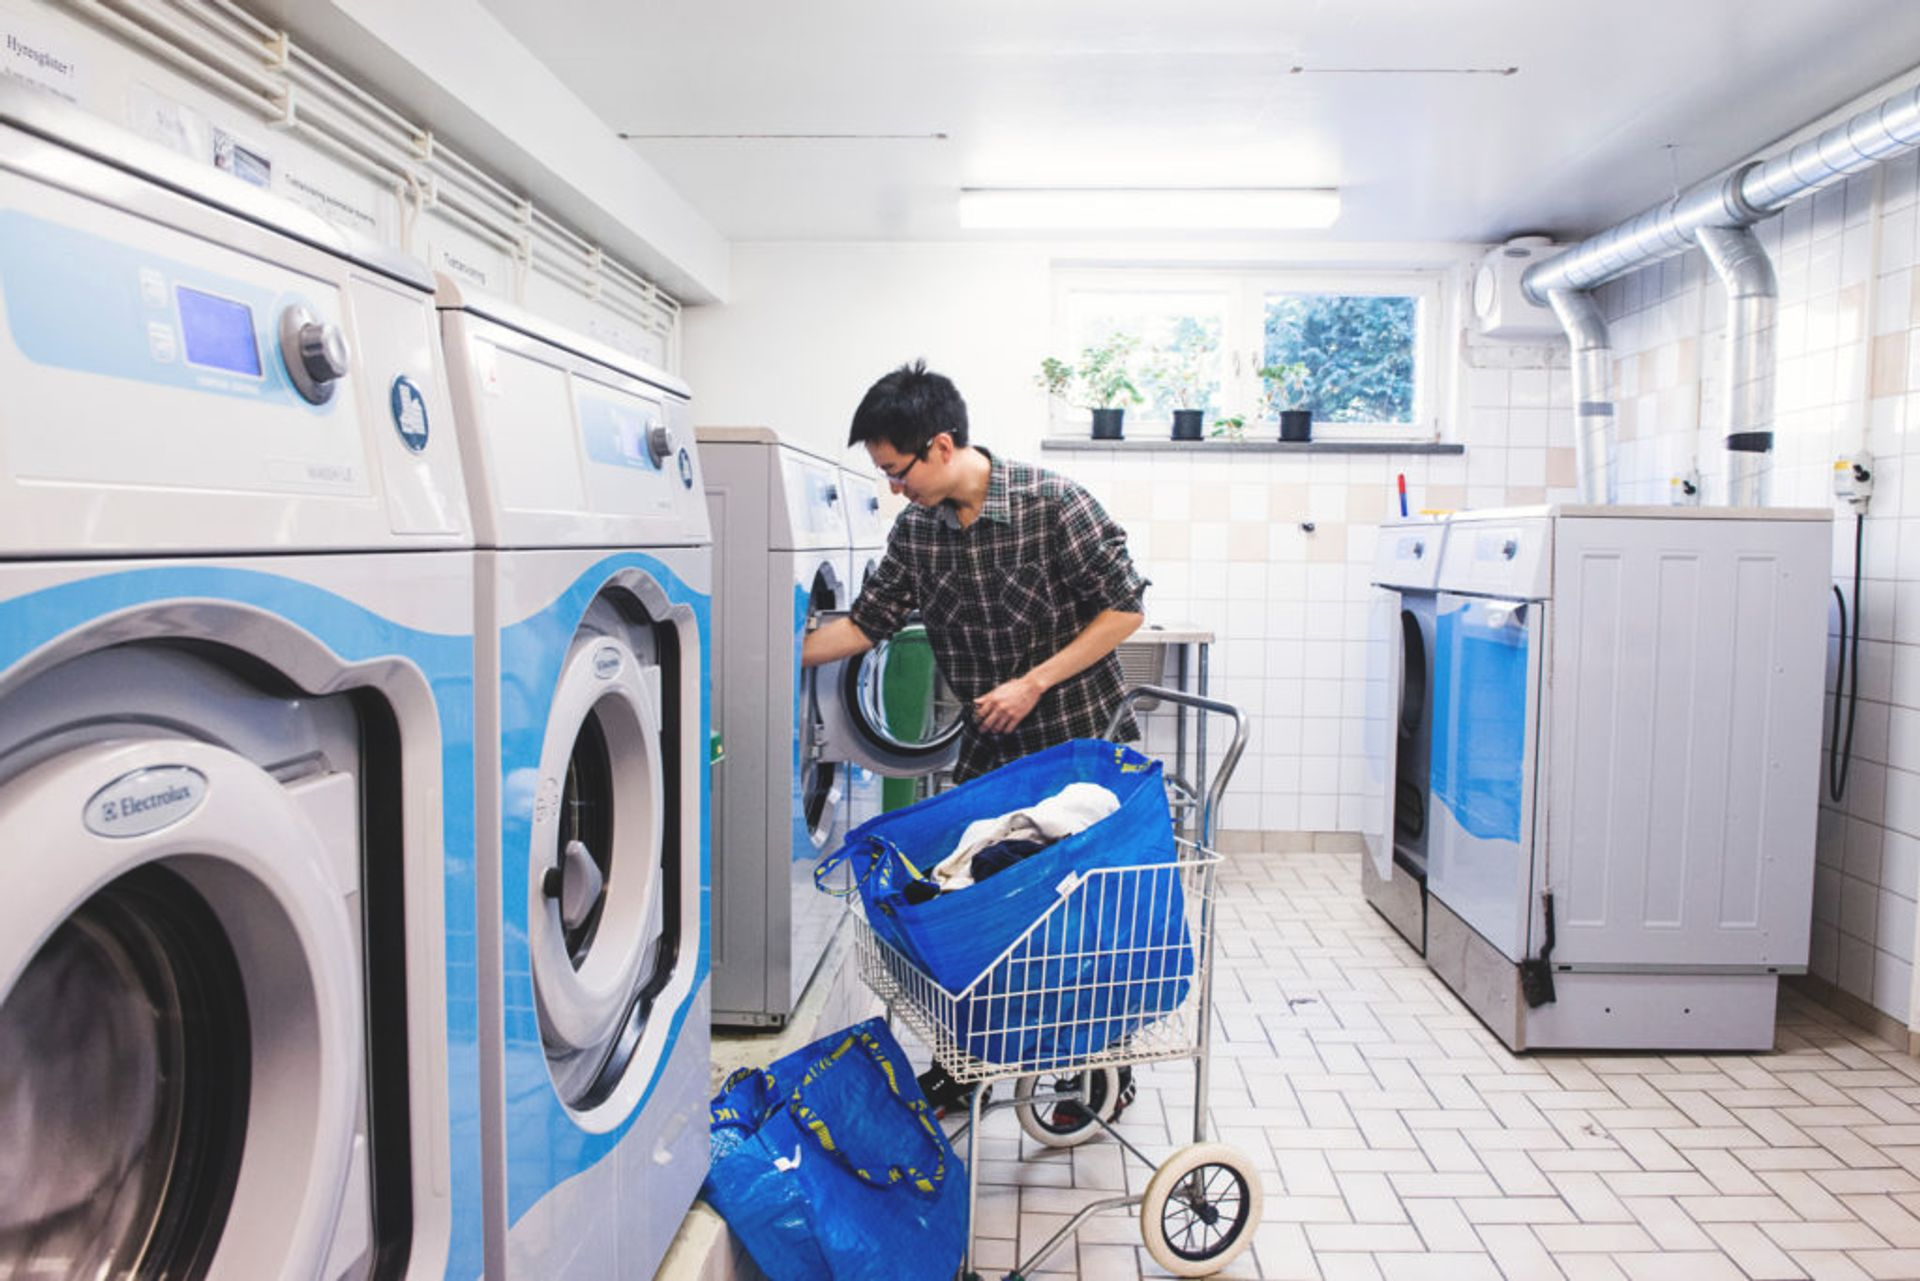 A student filling a large washing machine with dirty clothes in a laundry room.